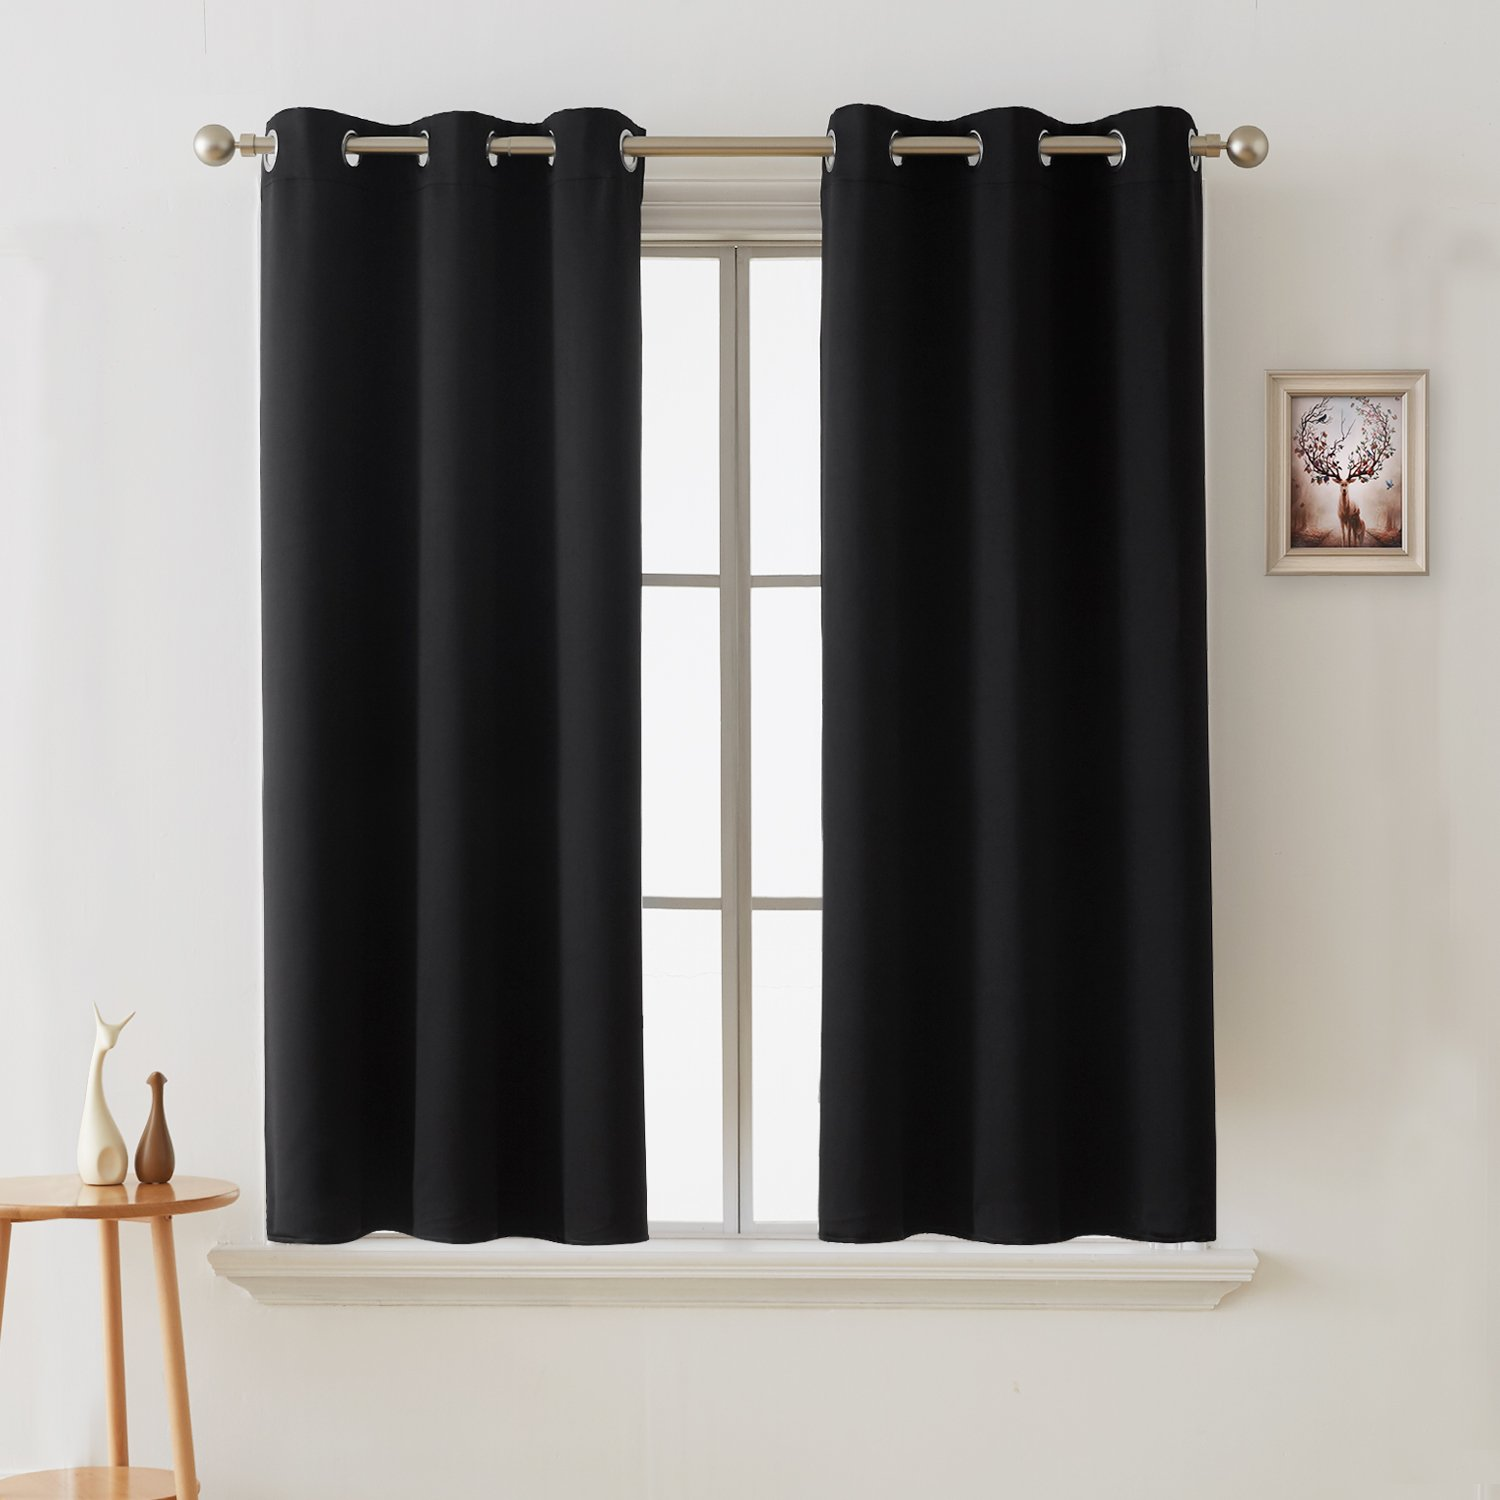 Deconovo Blackout Curtains Room Darkening Thermal Insulated Curtain Panels Grommet for Living Room Black 38 x 45 Inch 2 Panels